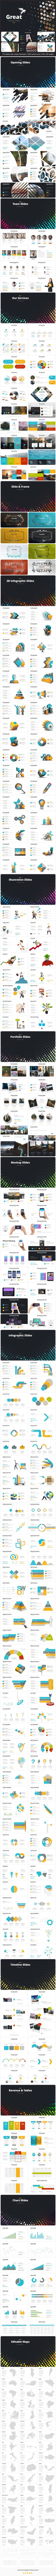 Great Corporate - Business #PowerPoint #Templates Download here: https://graphicriver.net/item/great-corporate/20085910?ref=alena994